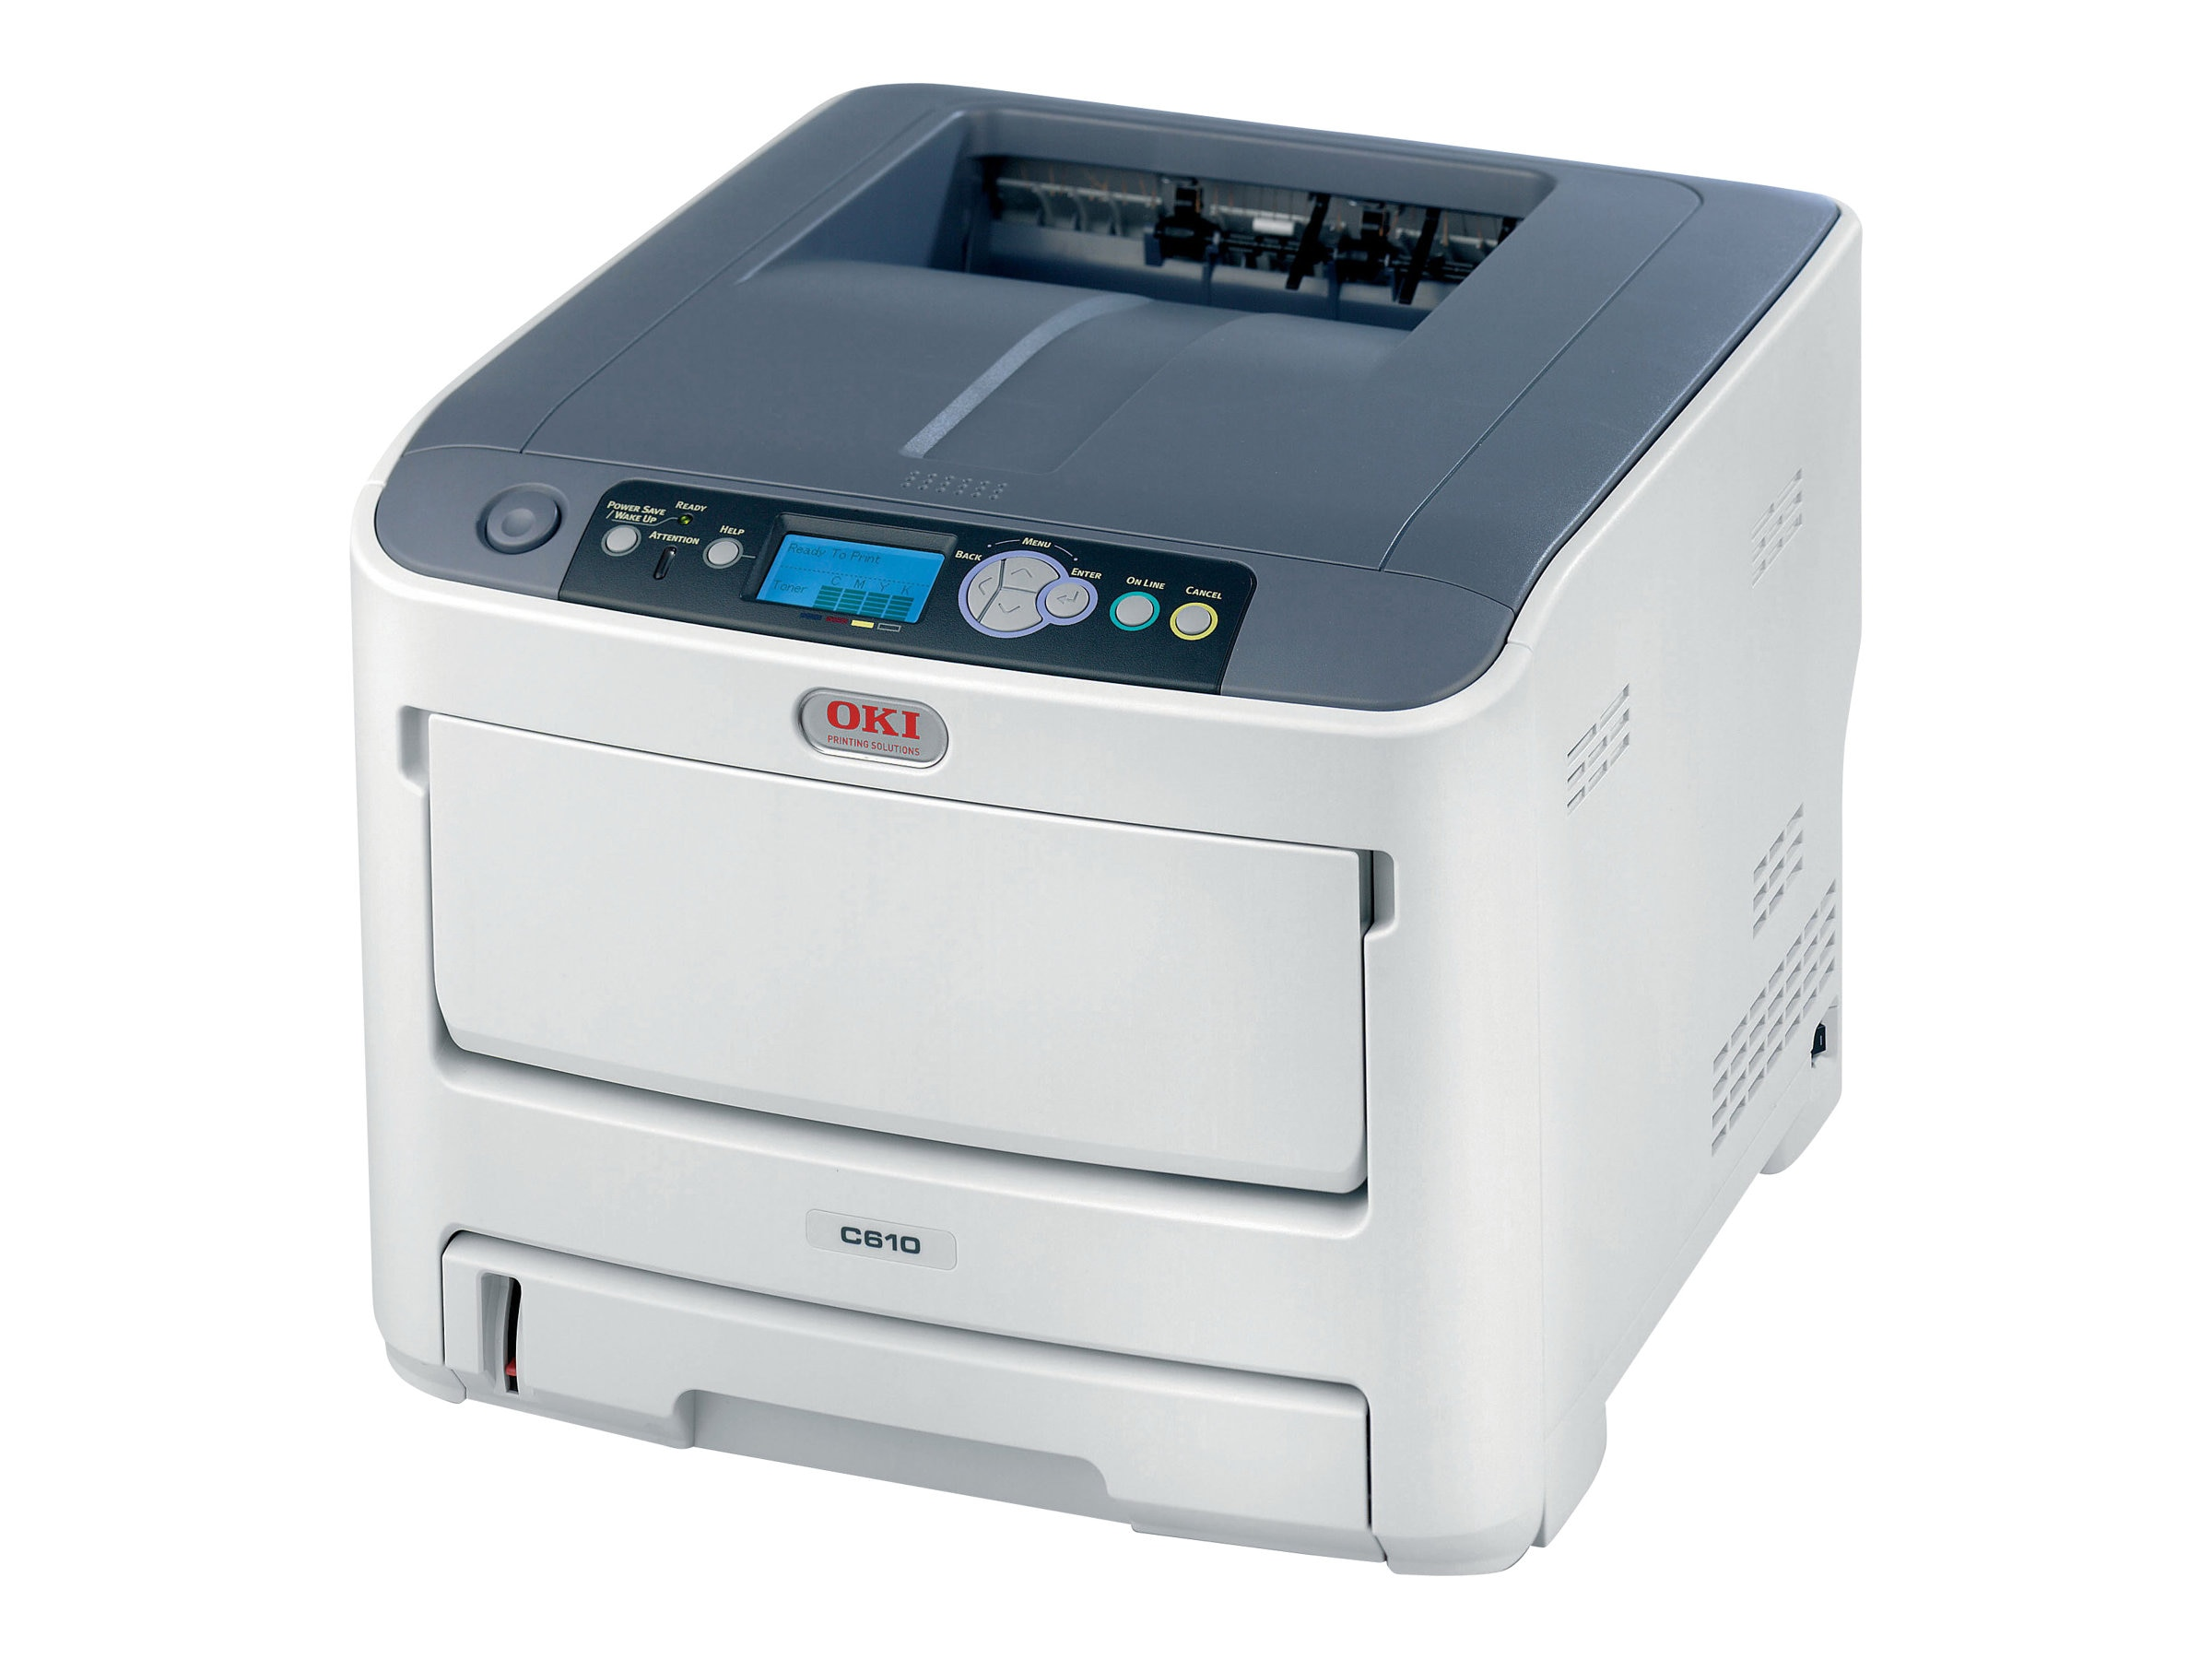 Oki C610n Digital Color Printer, 62433401, 10948410, Printers - Laser & LED (color)